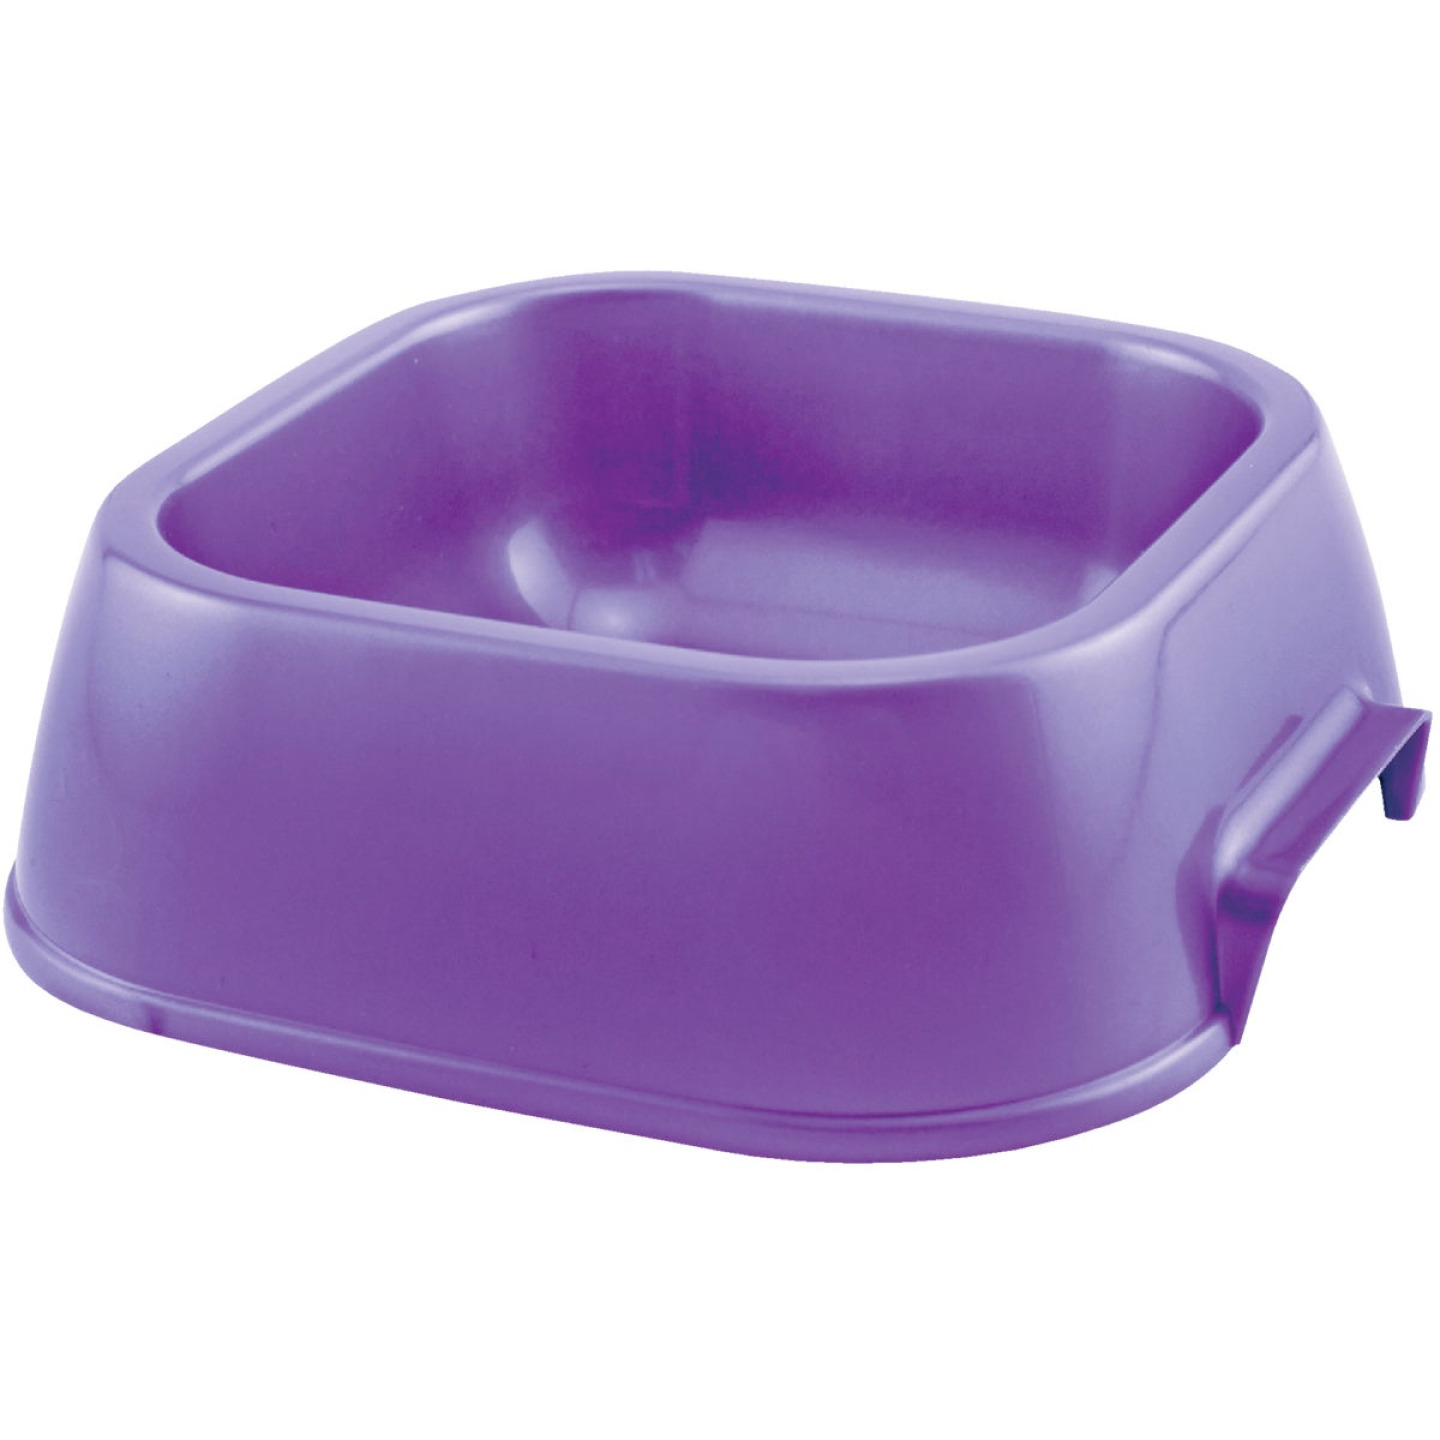 Westminster Pet Ruffin' it Plastic Rounded Square Small Pet Food Bowl Image 1